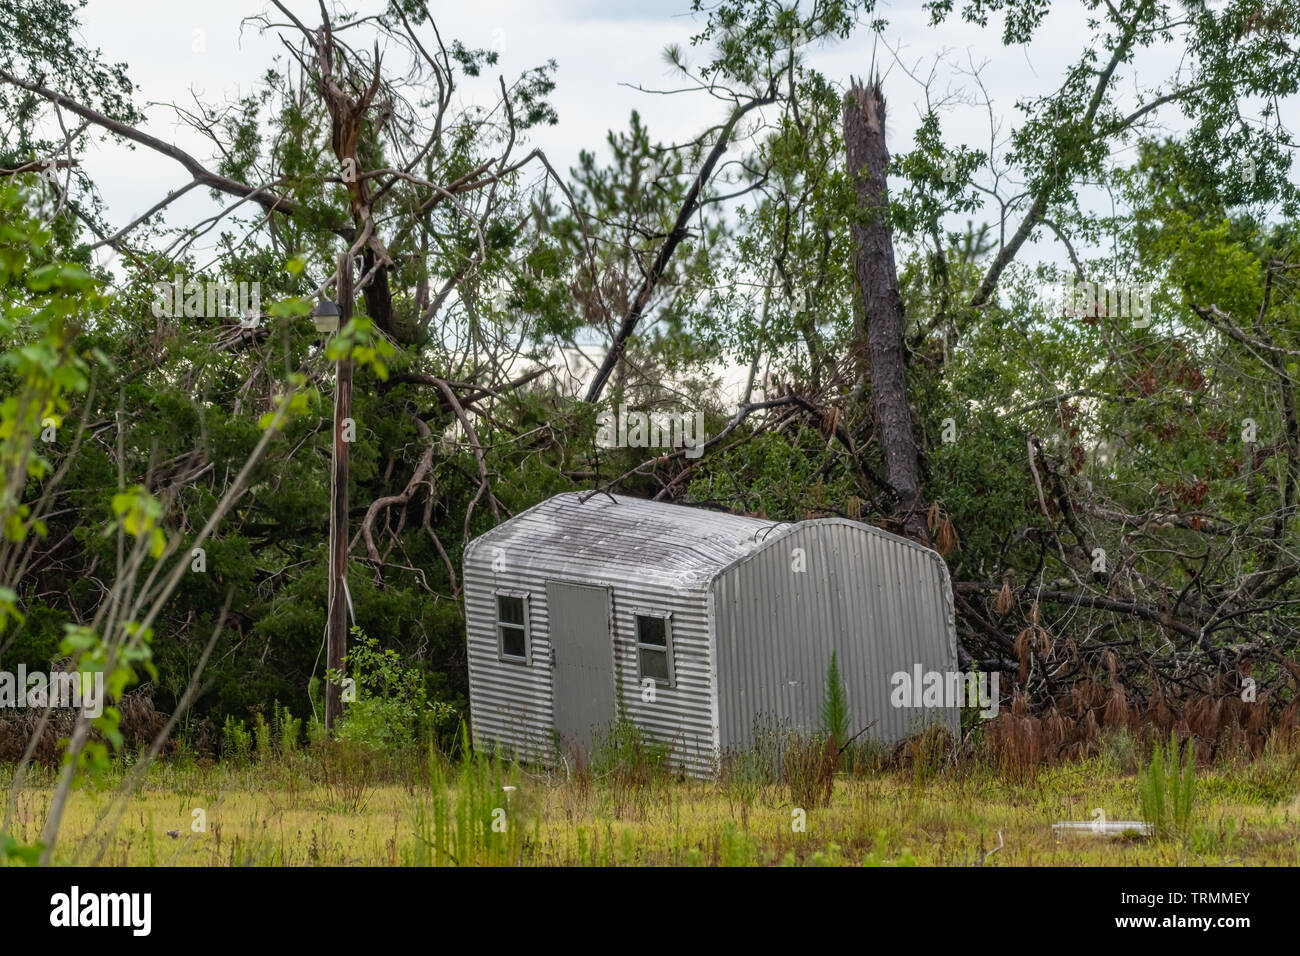 Metal storage shed picked up and moved by hurricane michael - Stock Image